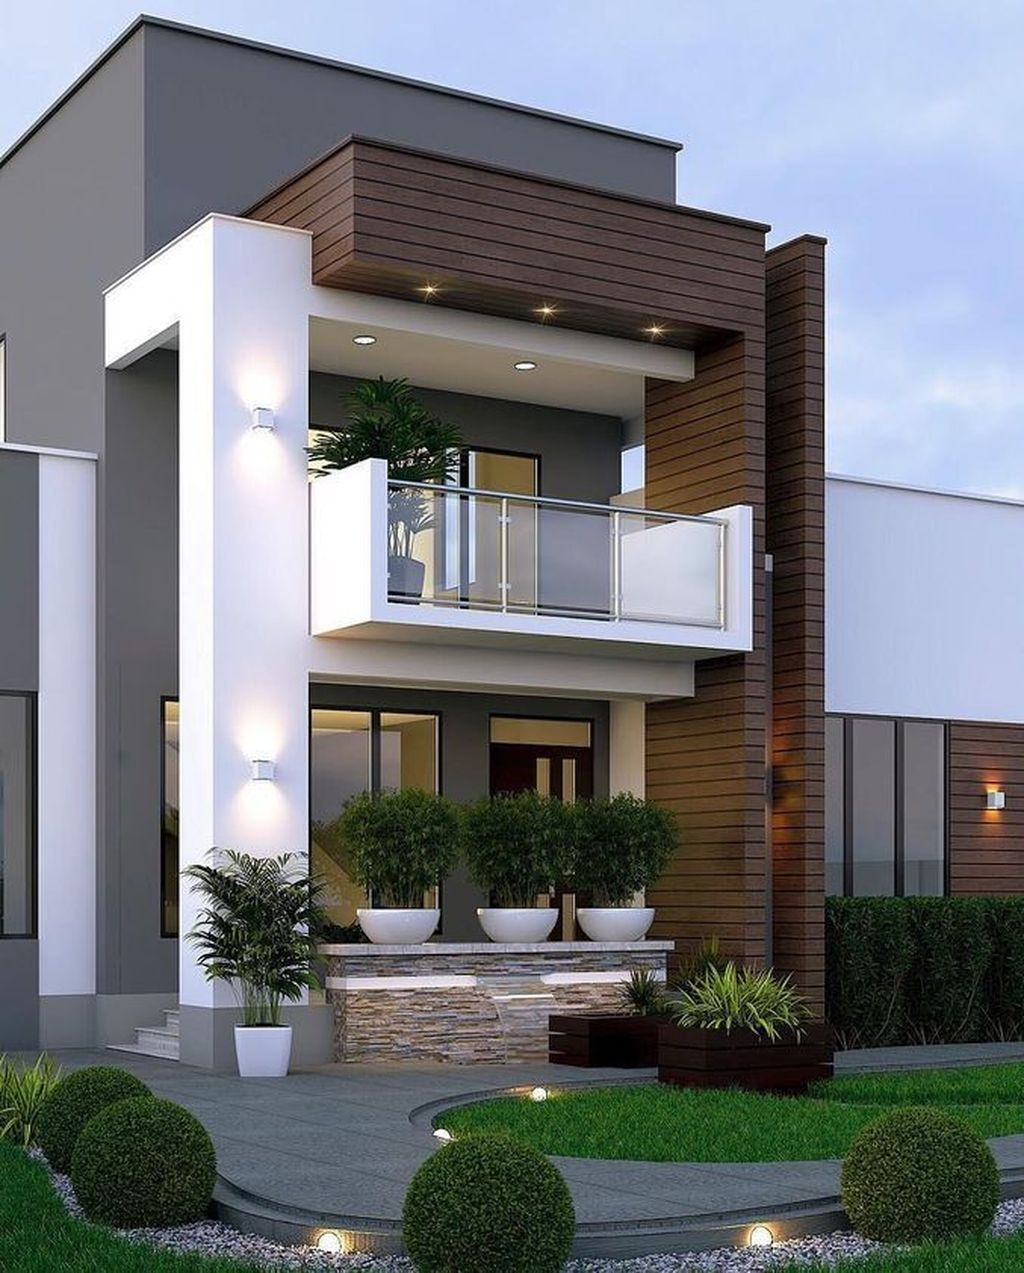 30 Stunning Minimalist Houses Design Ideas That Simple Unique And Modern Modern Minimalist House Duplex House Design Architecture House